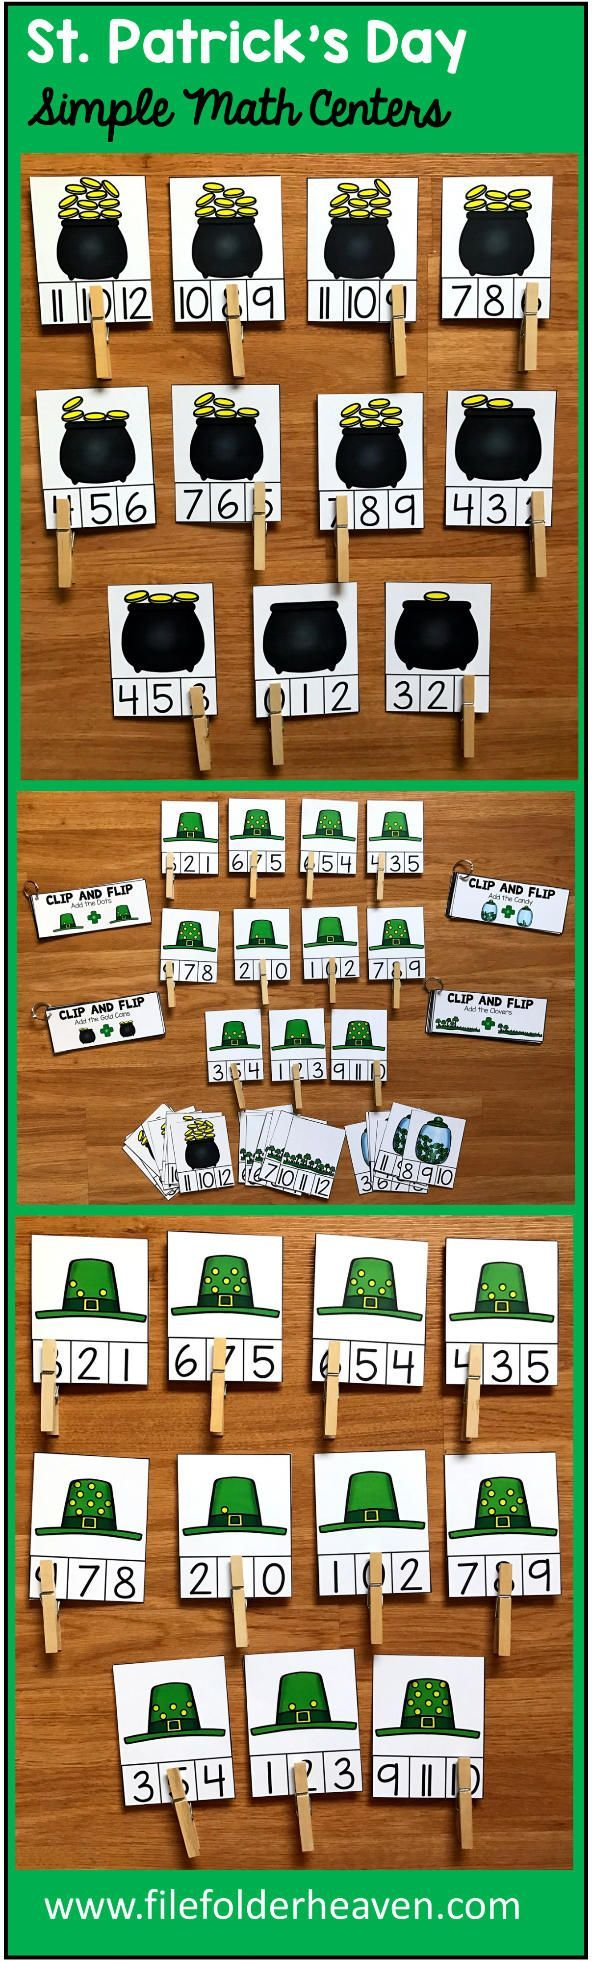 """These Simple Math Centers for St. Patrick's day include 4 St. Patrick's Day themed sets of """"Count and Clip"""" Task Cards, and 4 """"Clip and Flip"""" Books that focus on simple addition.  Clip and Flip Task Card Sets Included:  Count the Clovers (Numbers 0-10) Count the St. Patrick's Day Candy (Numbers 0-10) Count the Gold (Numbers 0-10) Count the Dots on the Leprechaun's Hat (Numbers 0-10)  Clip and Flip Books Included:  Add the Clovers Add the Gold Add the Dots  Add the St. Patrick's Day Candy"""